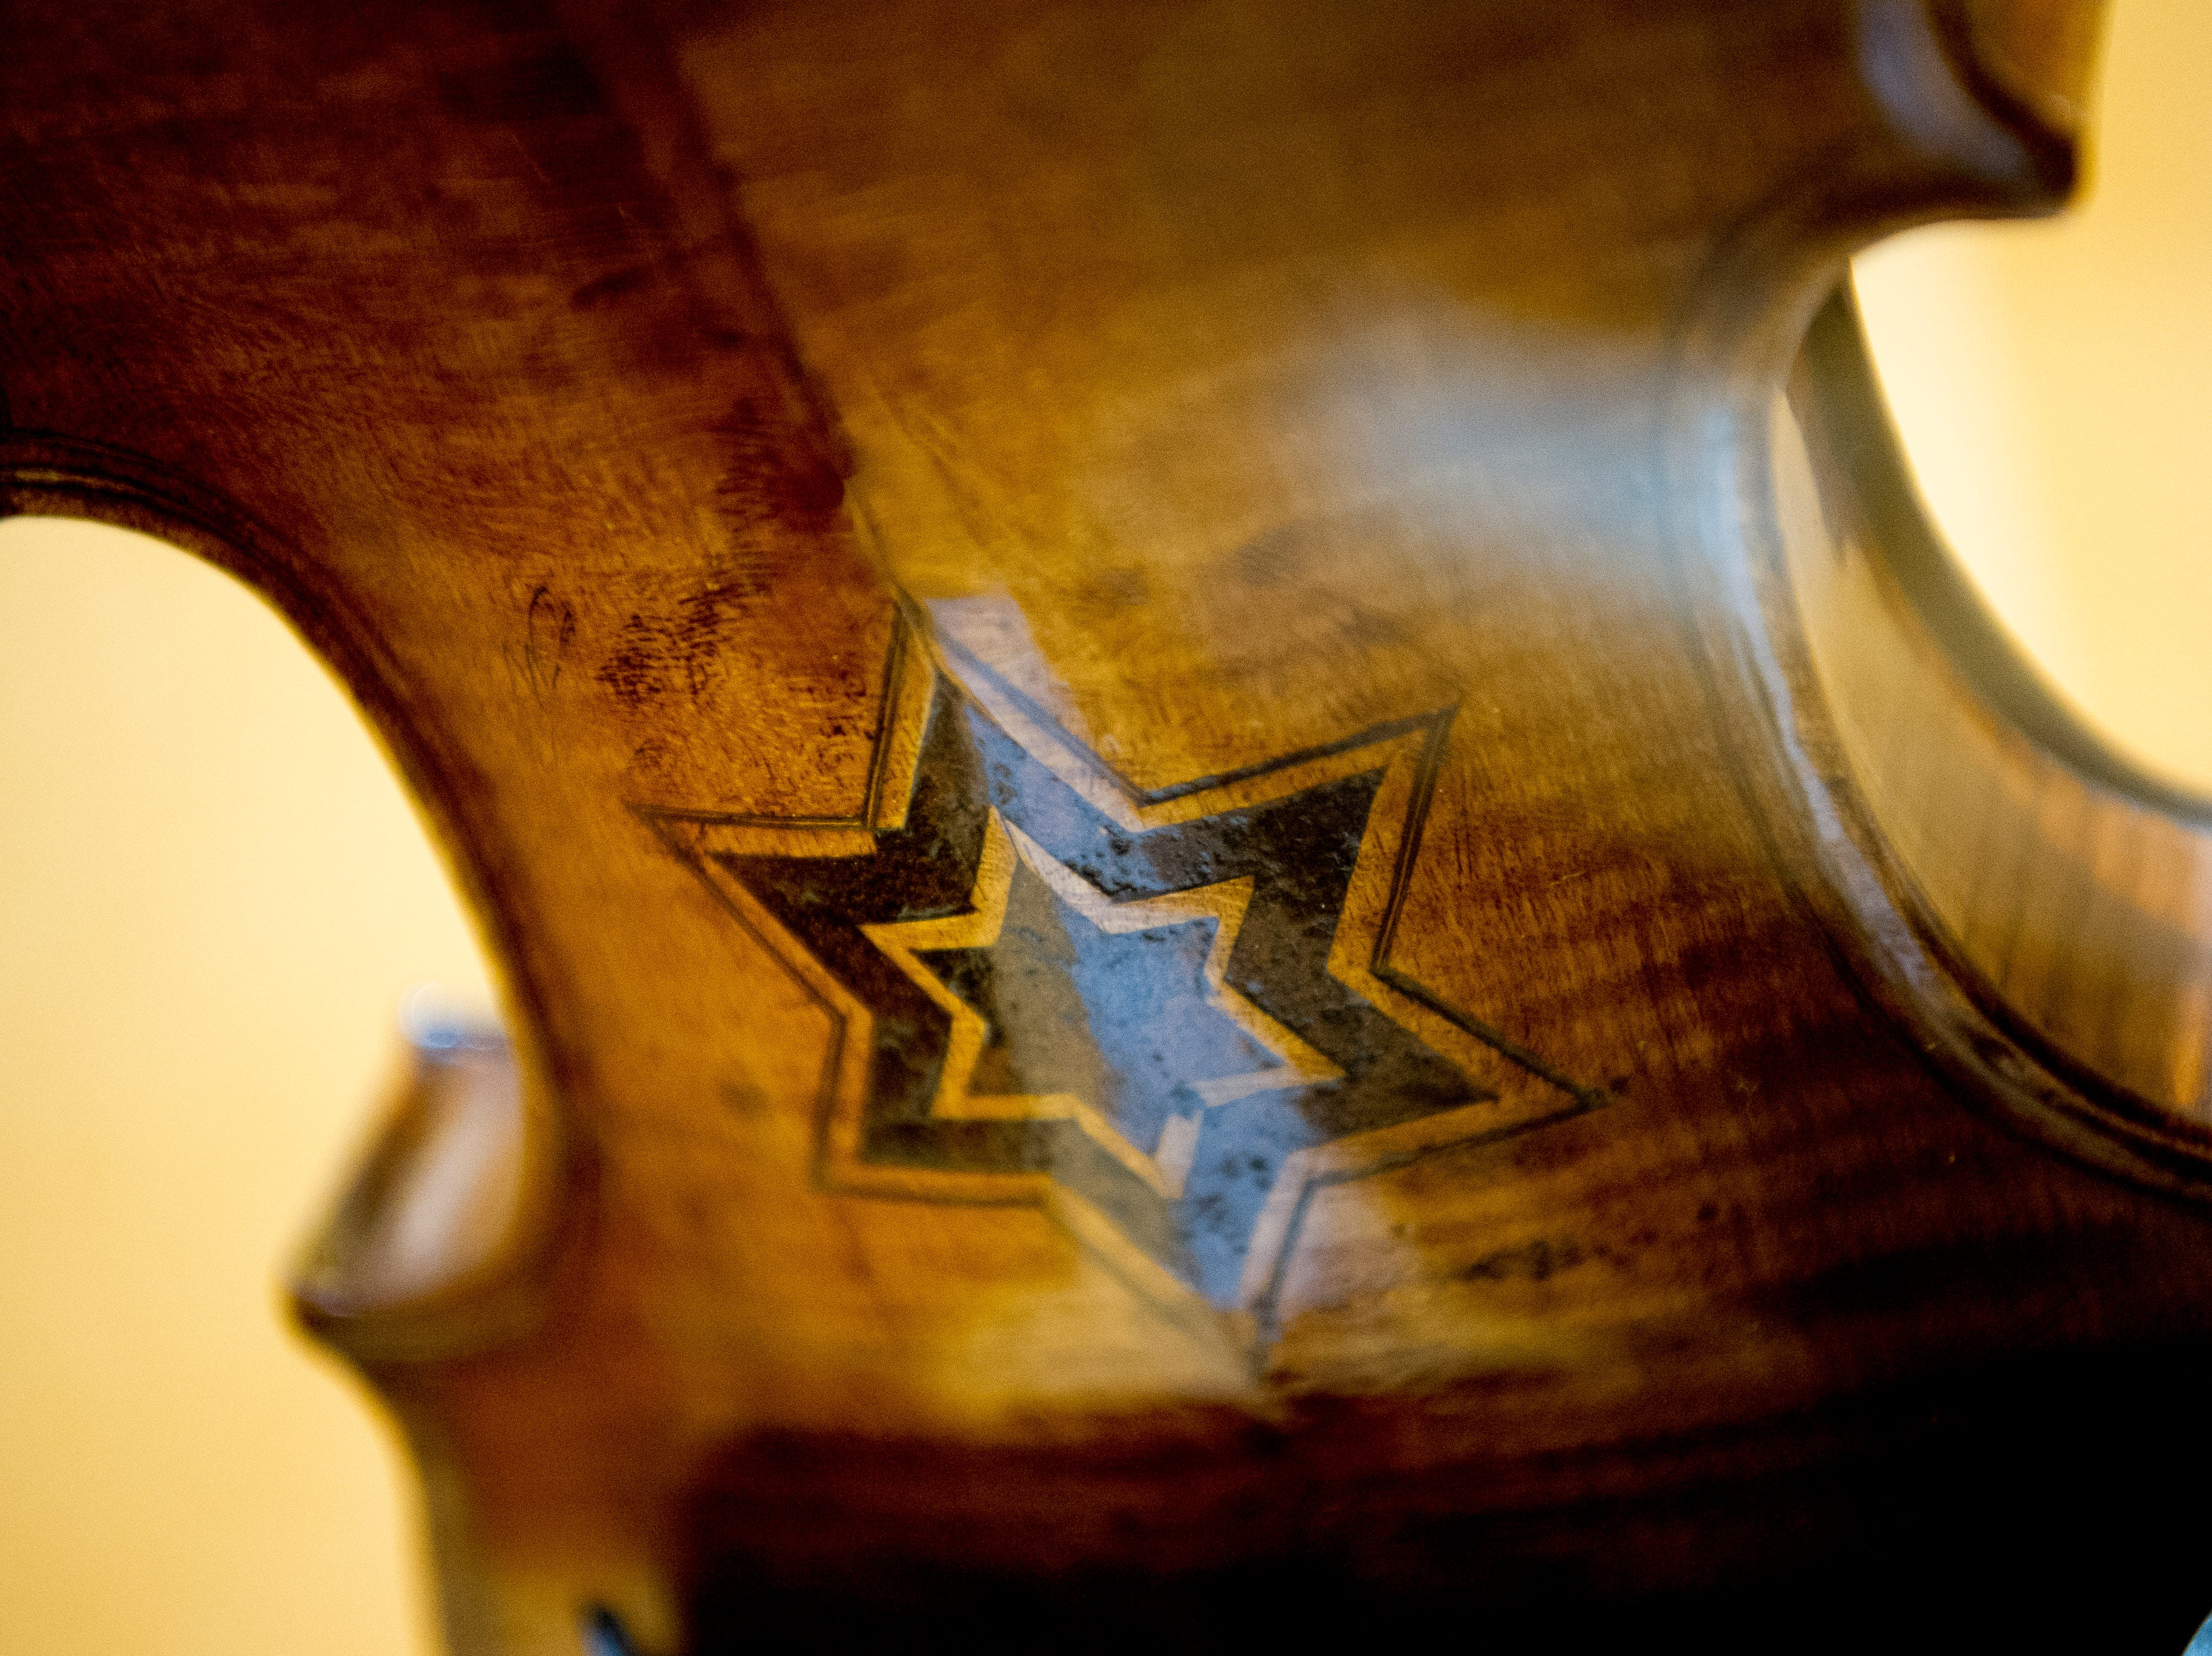 A Star of David seen on a violin at the Violins of Hope exhibit at the University of Tennessee Downtown Gallery, 106 S. Gay St., in Knoxville, Tennessee on Friday, January 4, 2019. The exhibit, from Israel, features 38 violins that were played by Jewish musicians during the Holocaust. The display runs from Jan. 4-27.